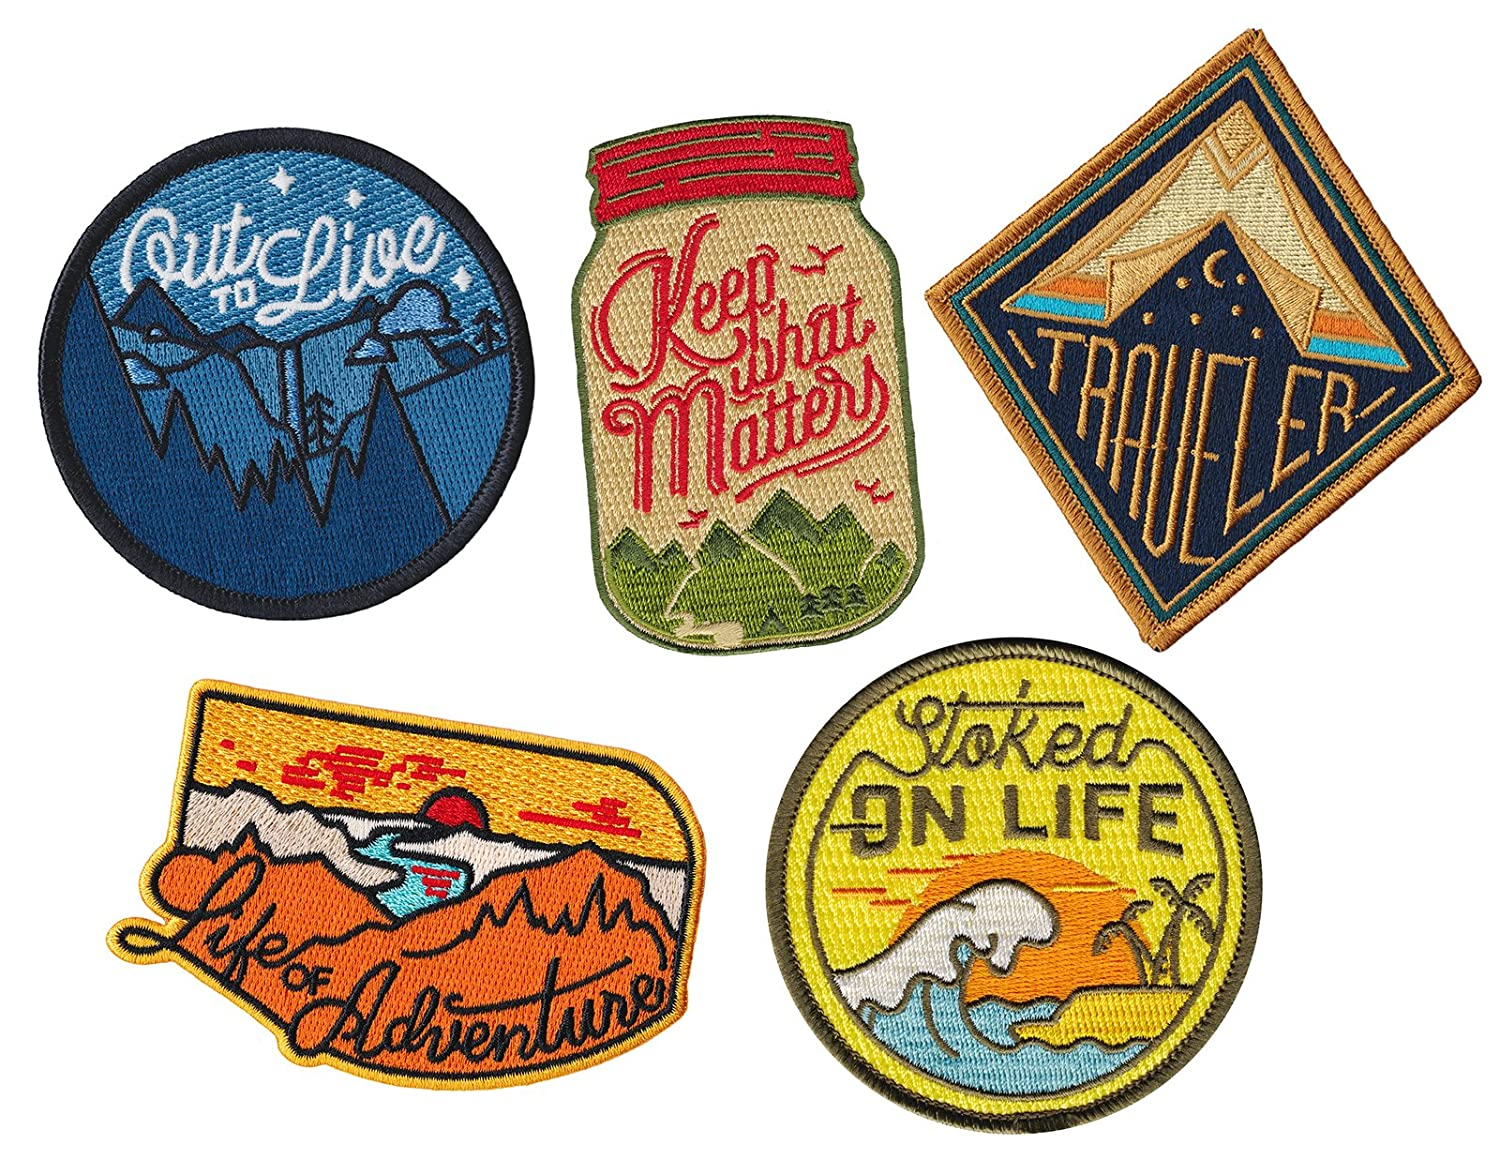 Asilda Store Iron On Patches Set - Perfect for Backpacks and Clothing - For Your Type of Fun [Adventure, Outdoor, Camping, Hiking, Travel] - Set of 5 Premium Quality Embroidered Patches 4337020472